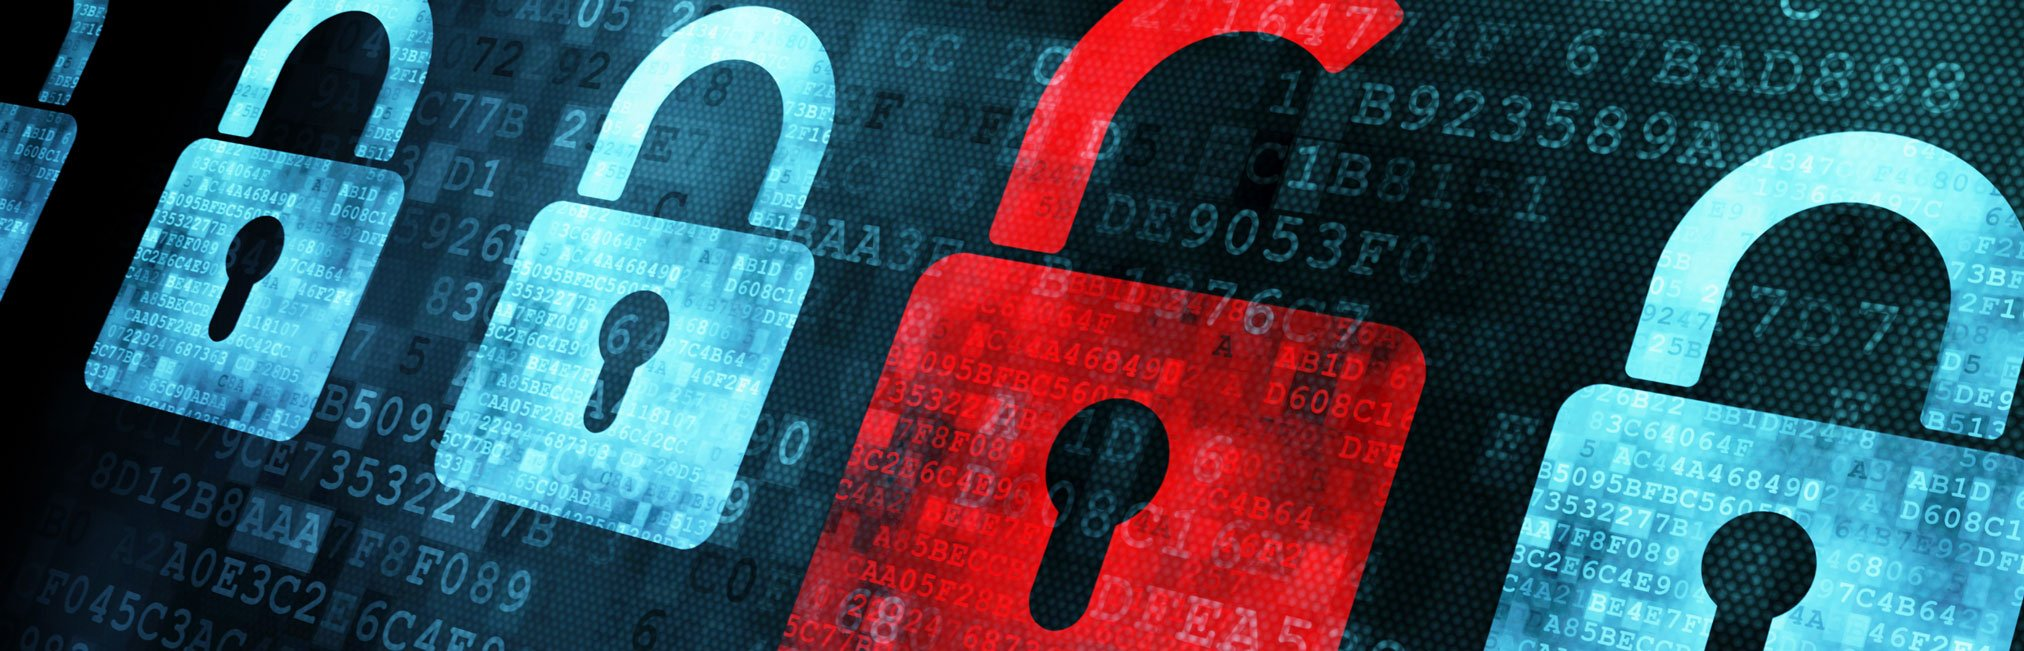 Cyber-Security-Good-Habits-2024-1018